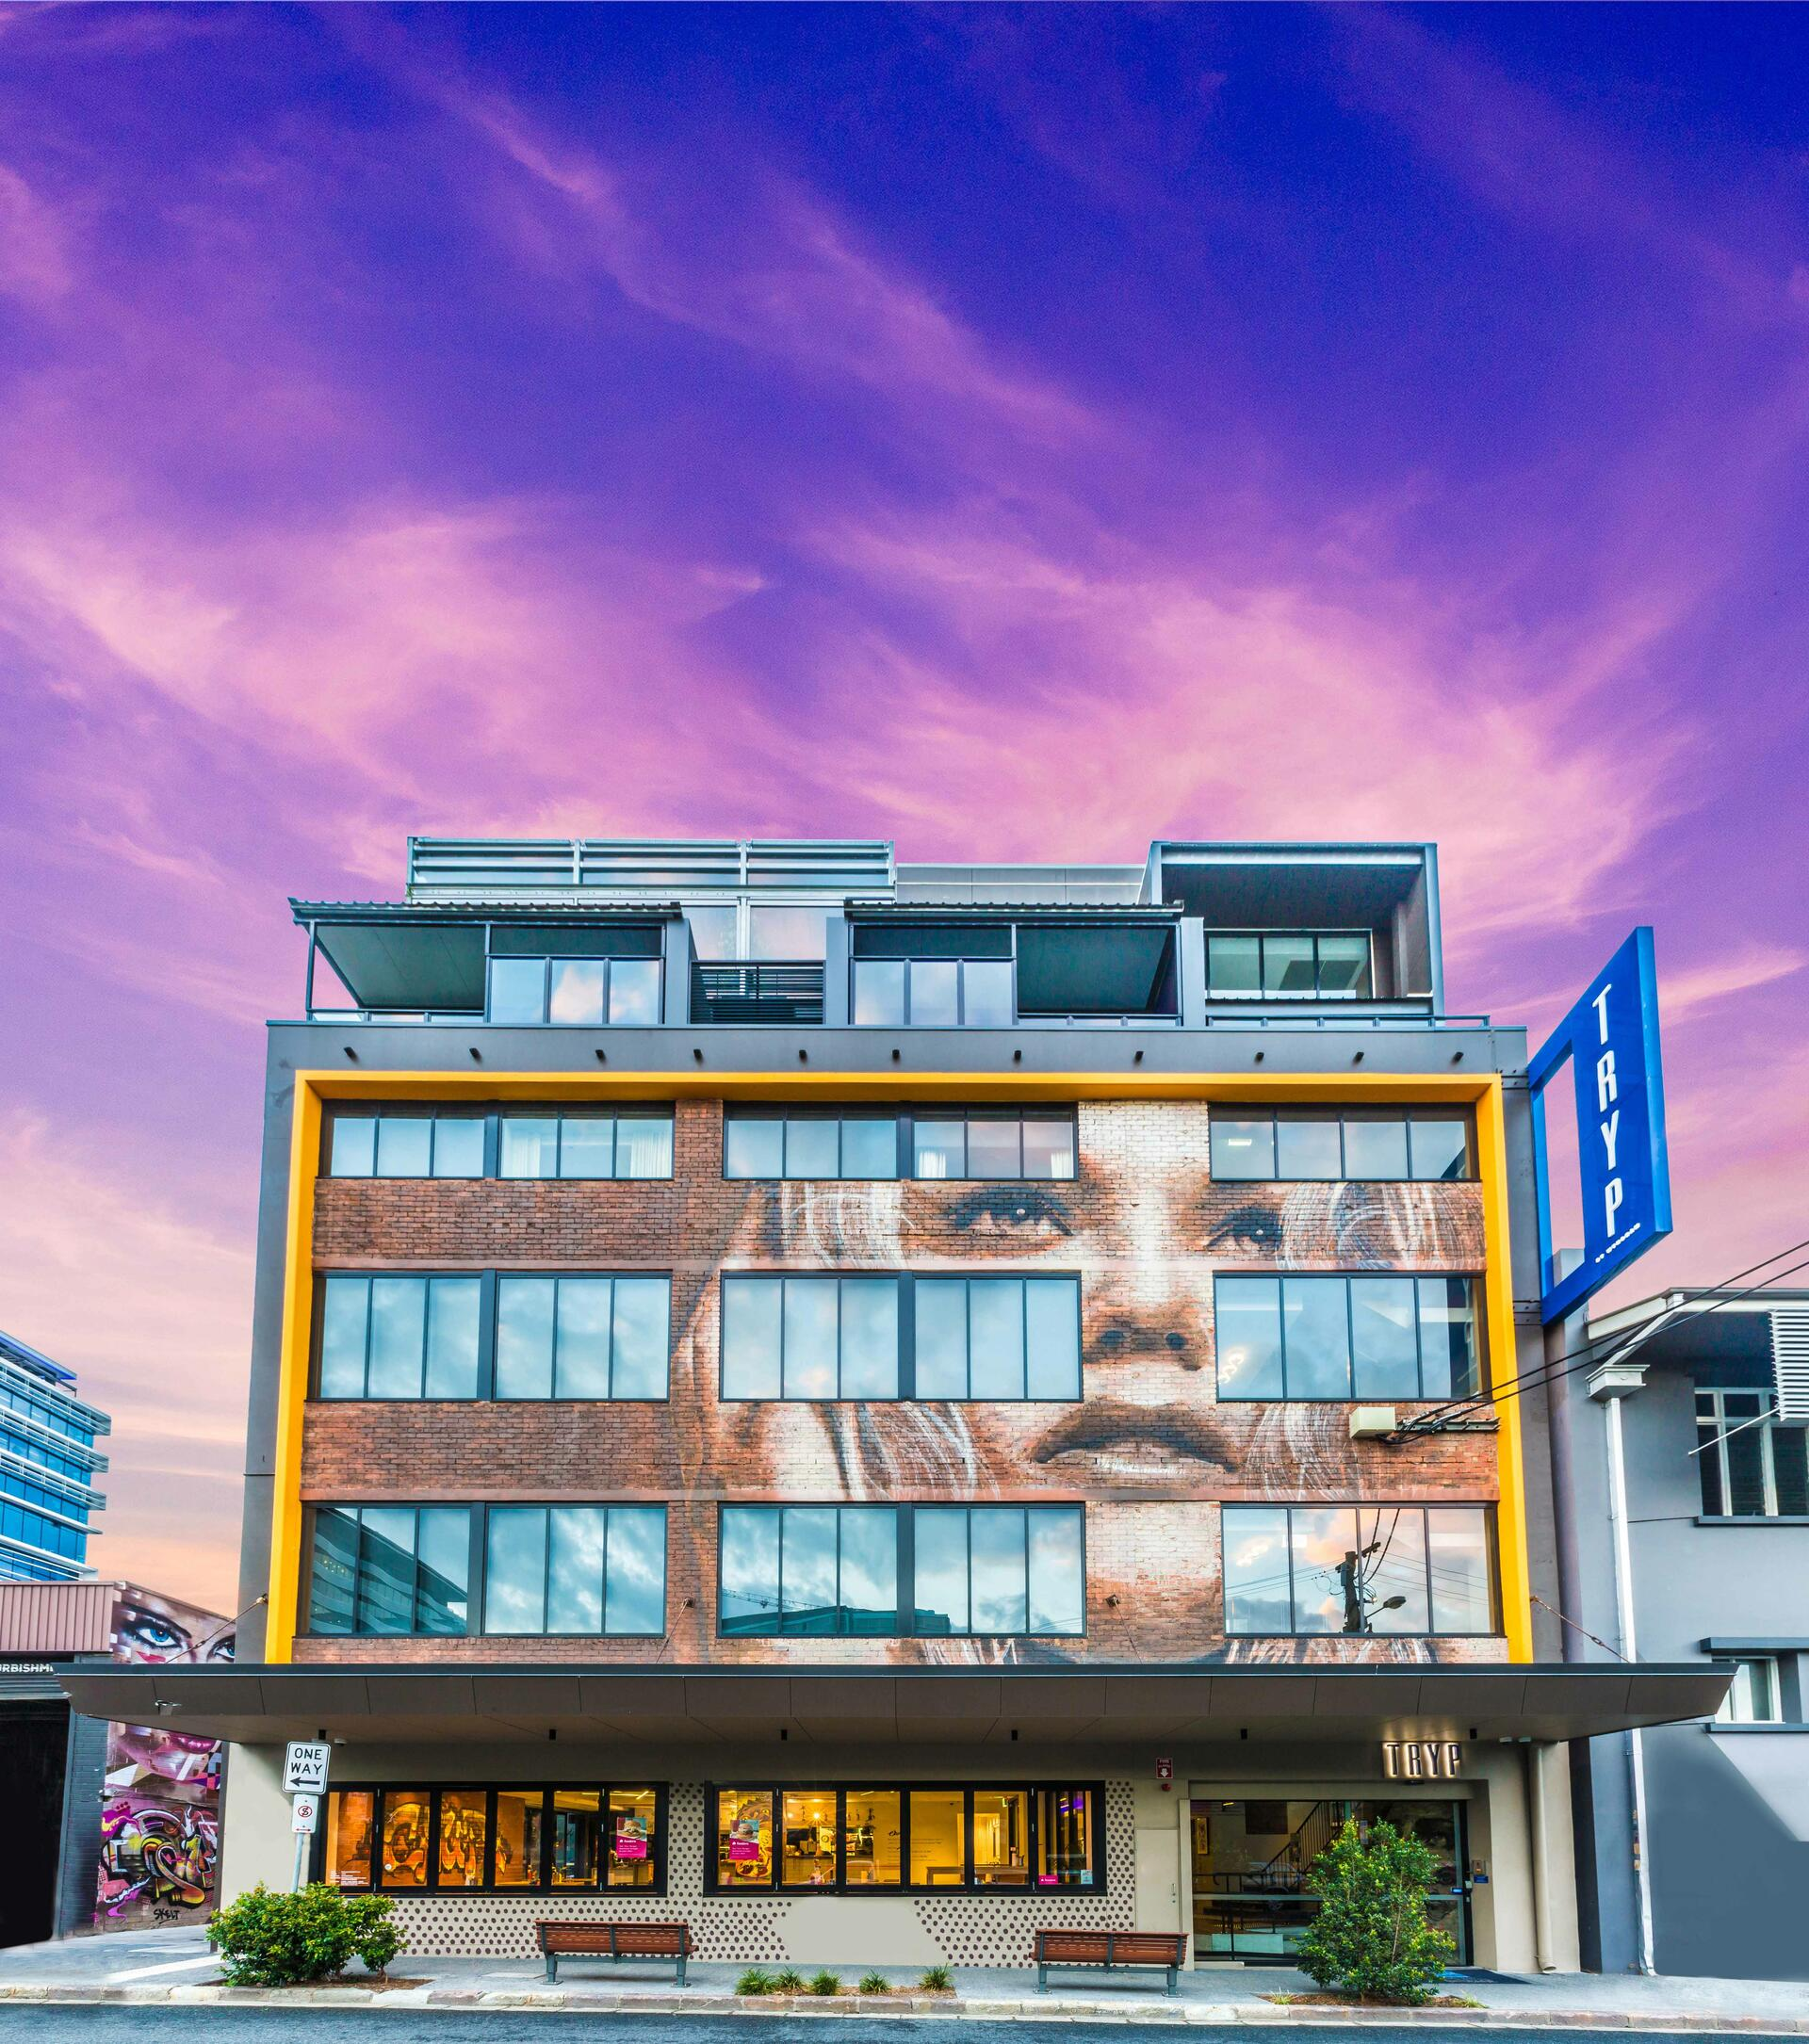 TRYP Fortitude Valley Hotel | Street Art Hotel in Brisbane